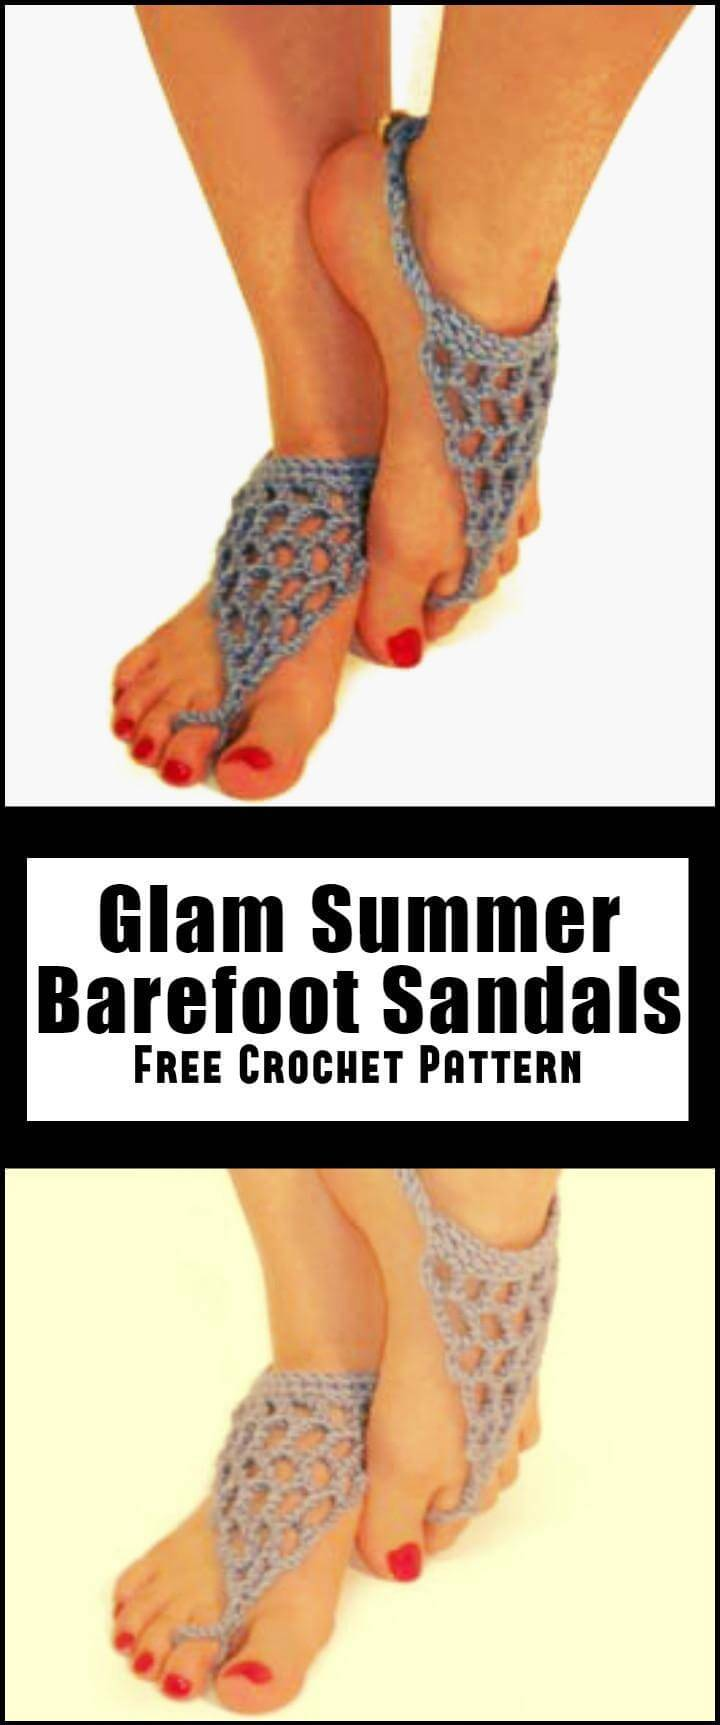 Glam Summer Barefoot Sandals Free Crochet Pattern